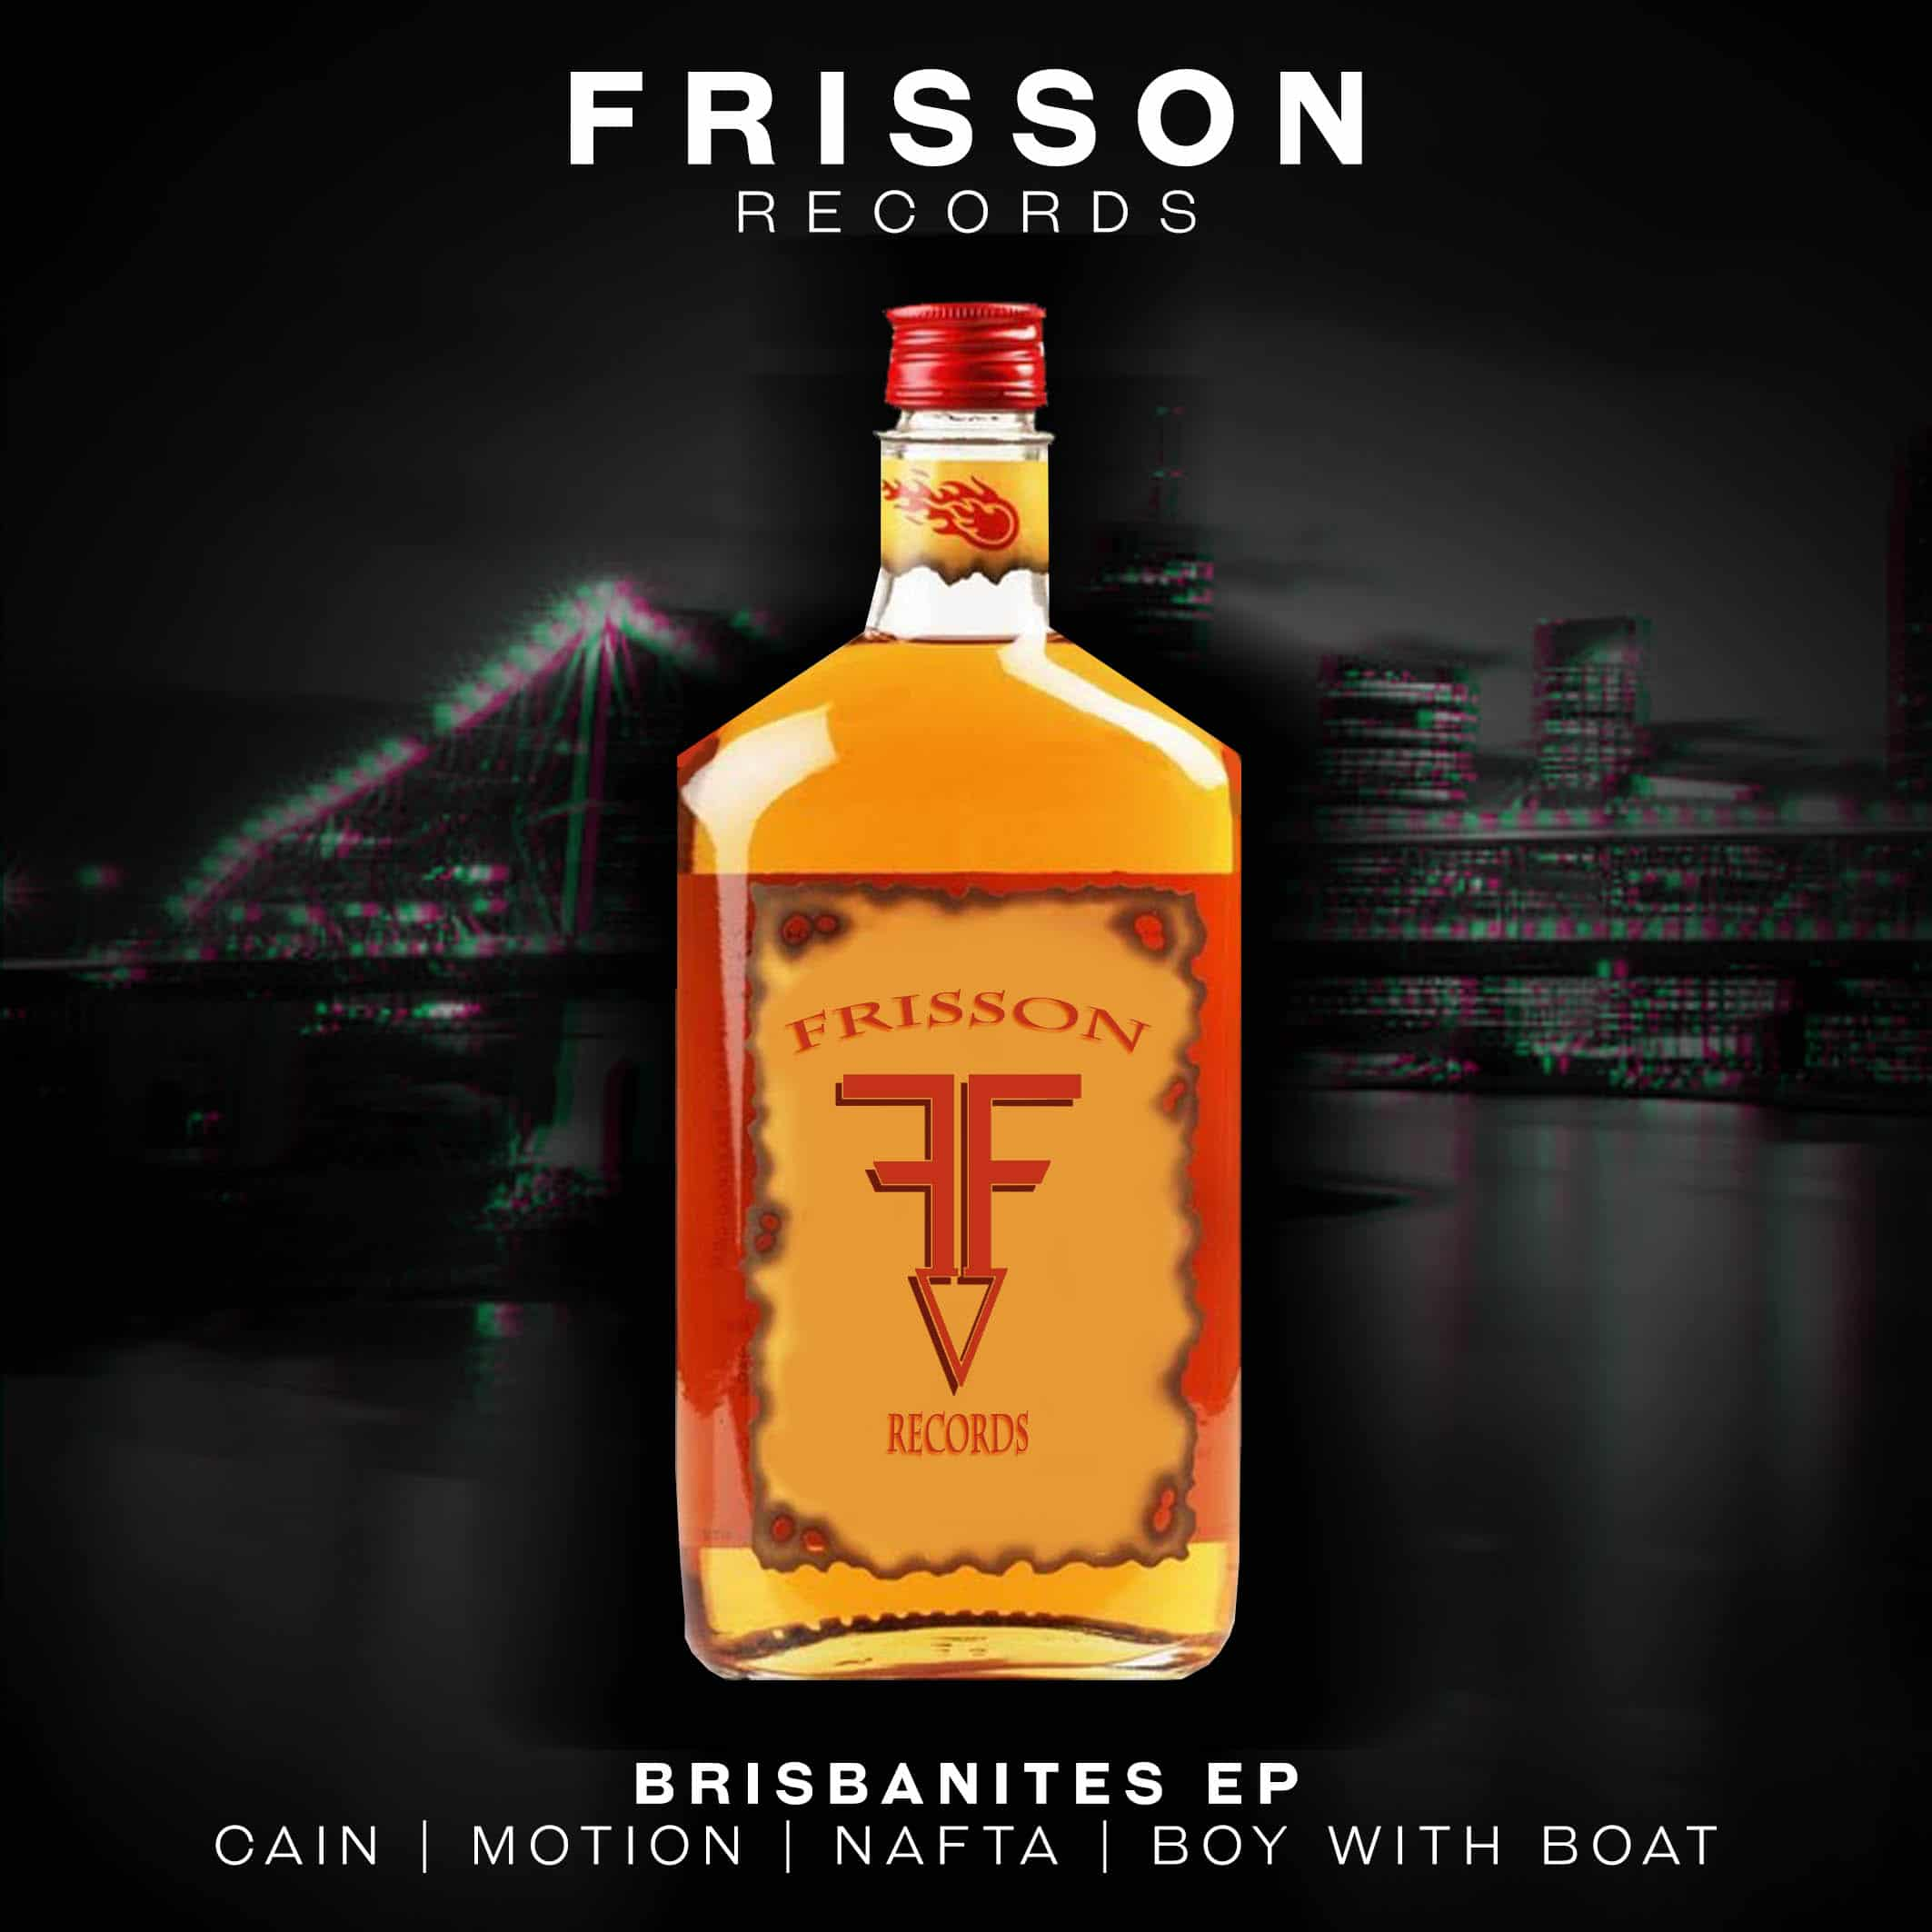 EXCLUSIVE PREMIERE: FRISSON RECORDS PRESENT 'BRISBANITES' EP